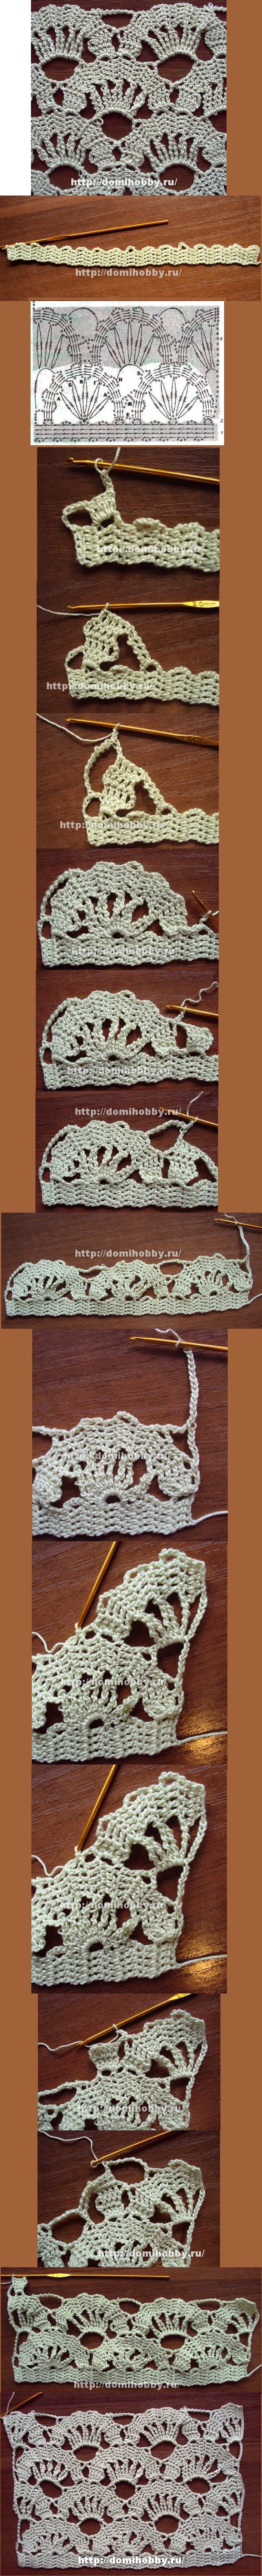 Crochet_Tutorial for a beautiful technique. Enjoy! #KnittingGuru http://www.pinterest.com/KnittingGuru